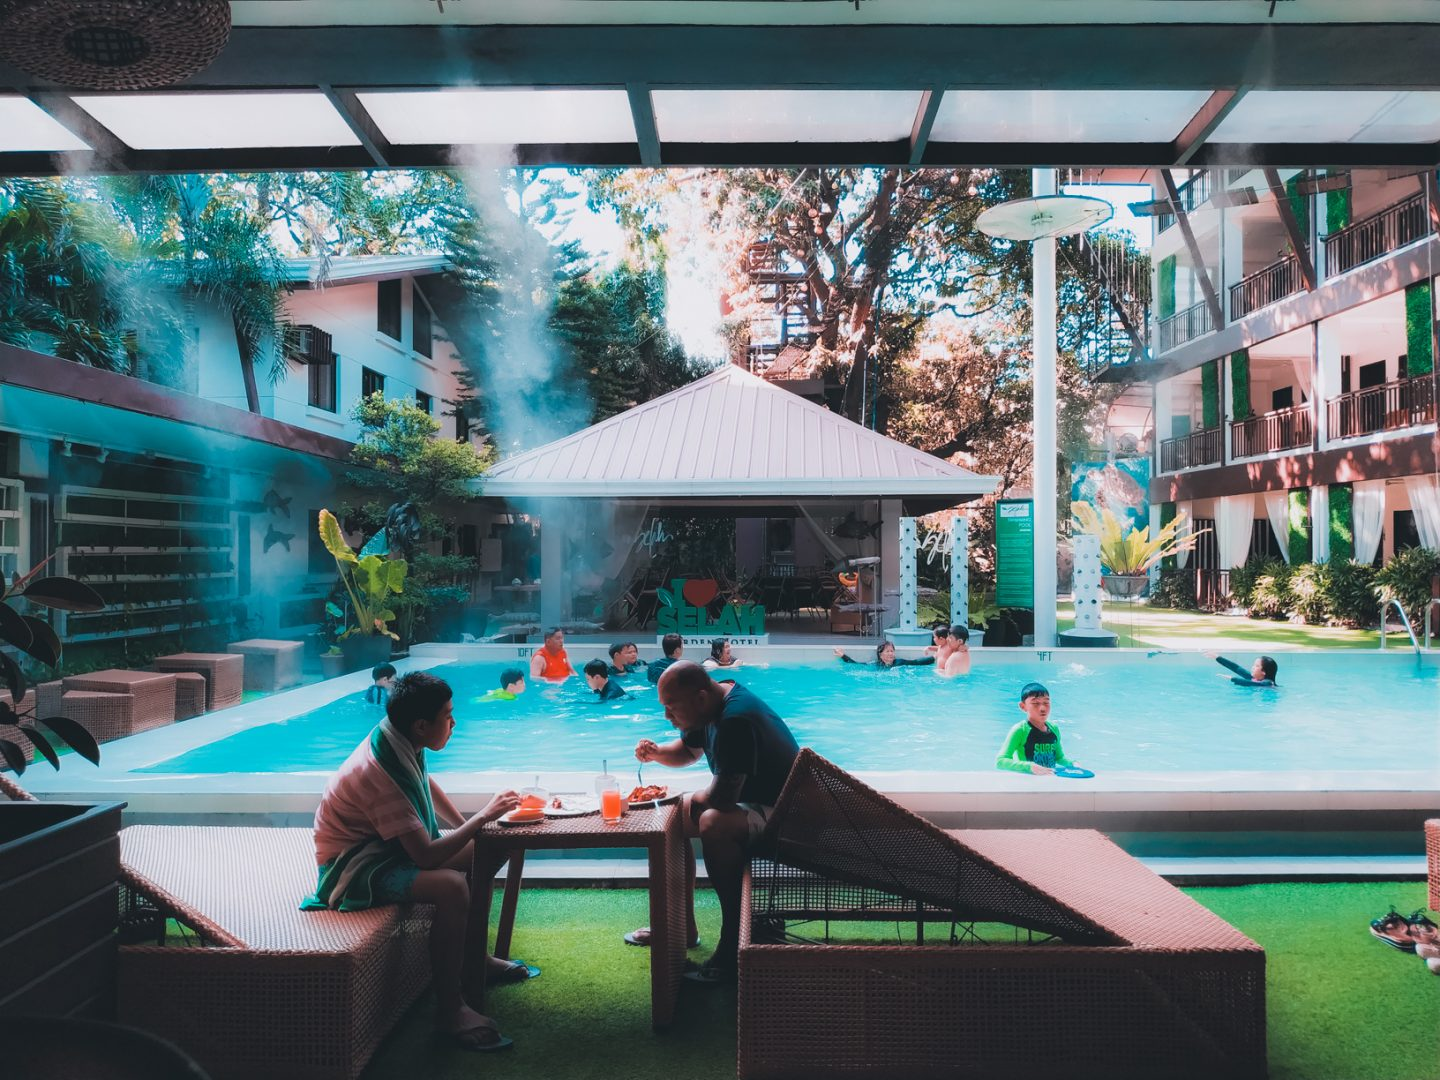 selah-garden-hotel-in-pasay-staycation-via-zen-rooms